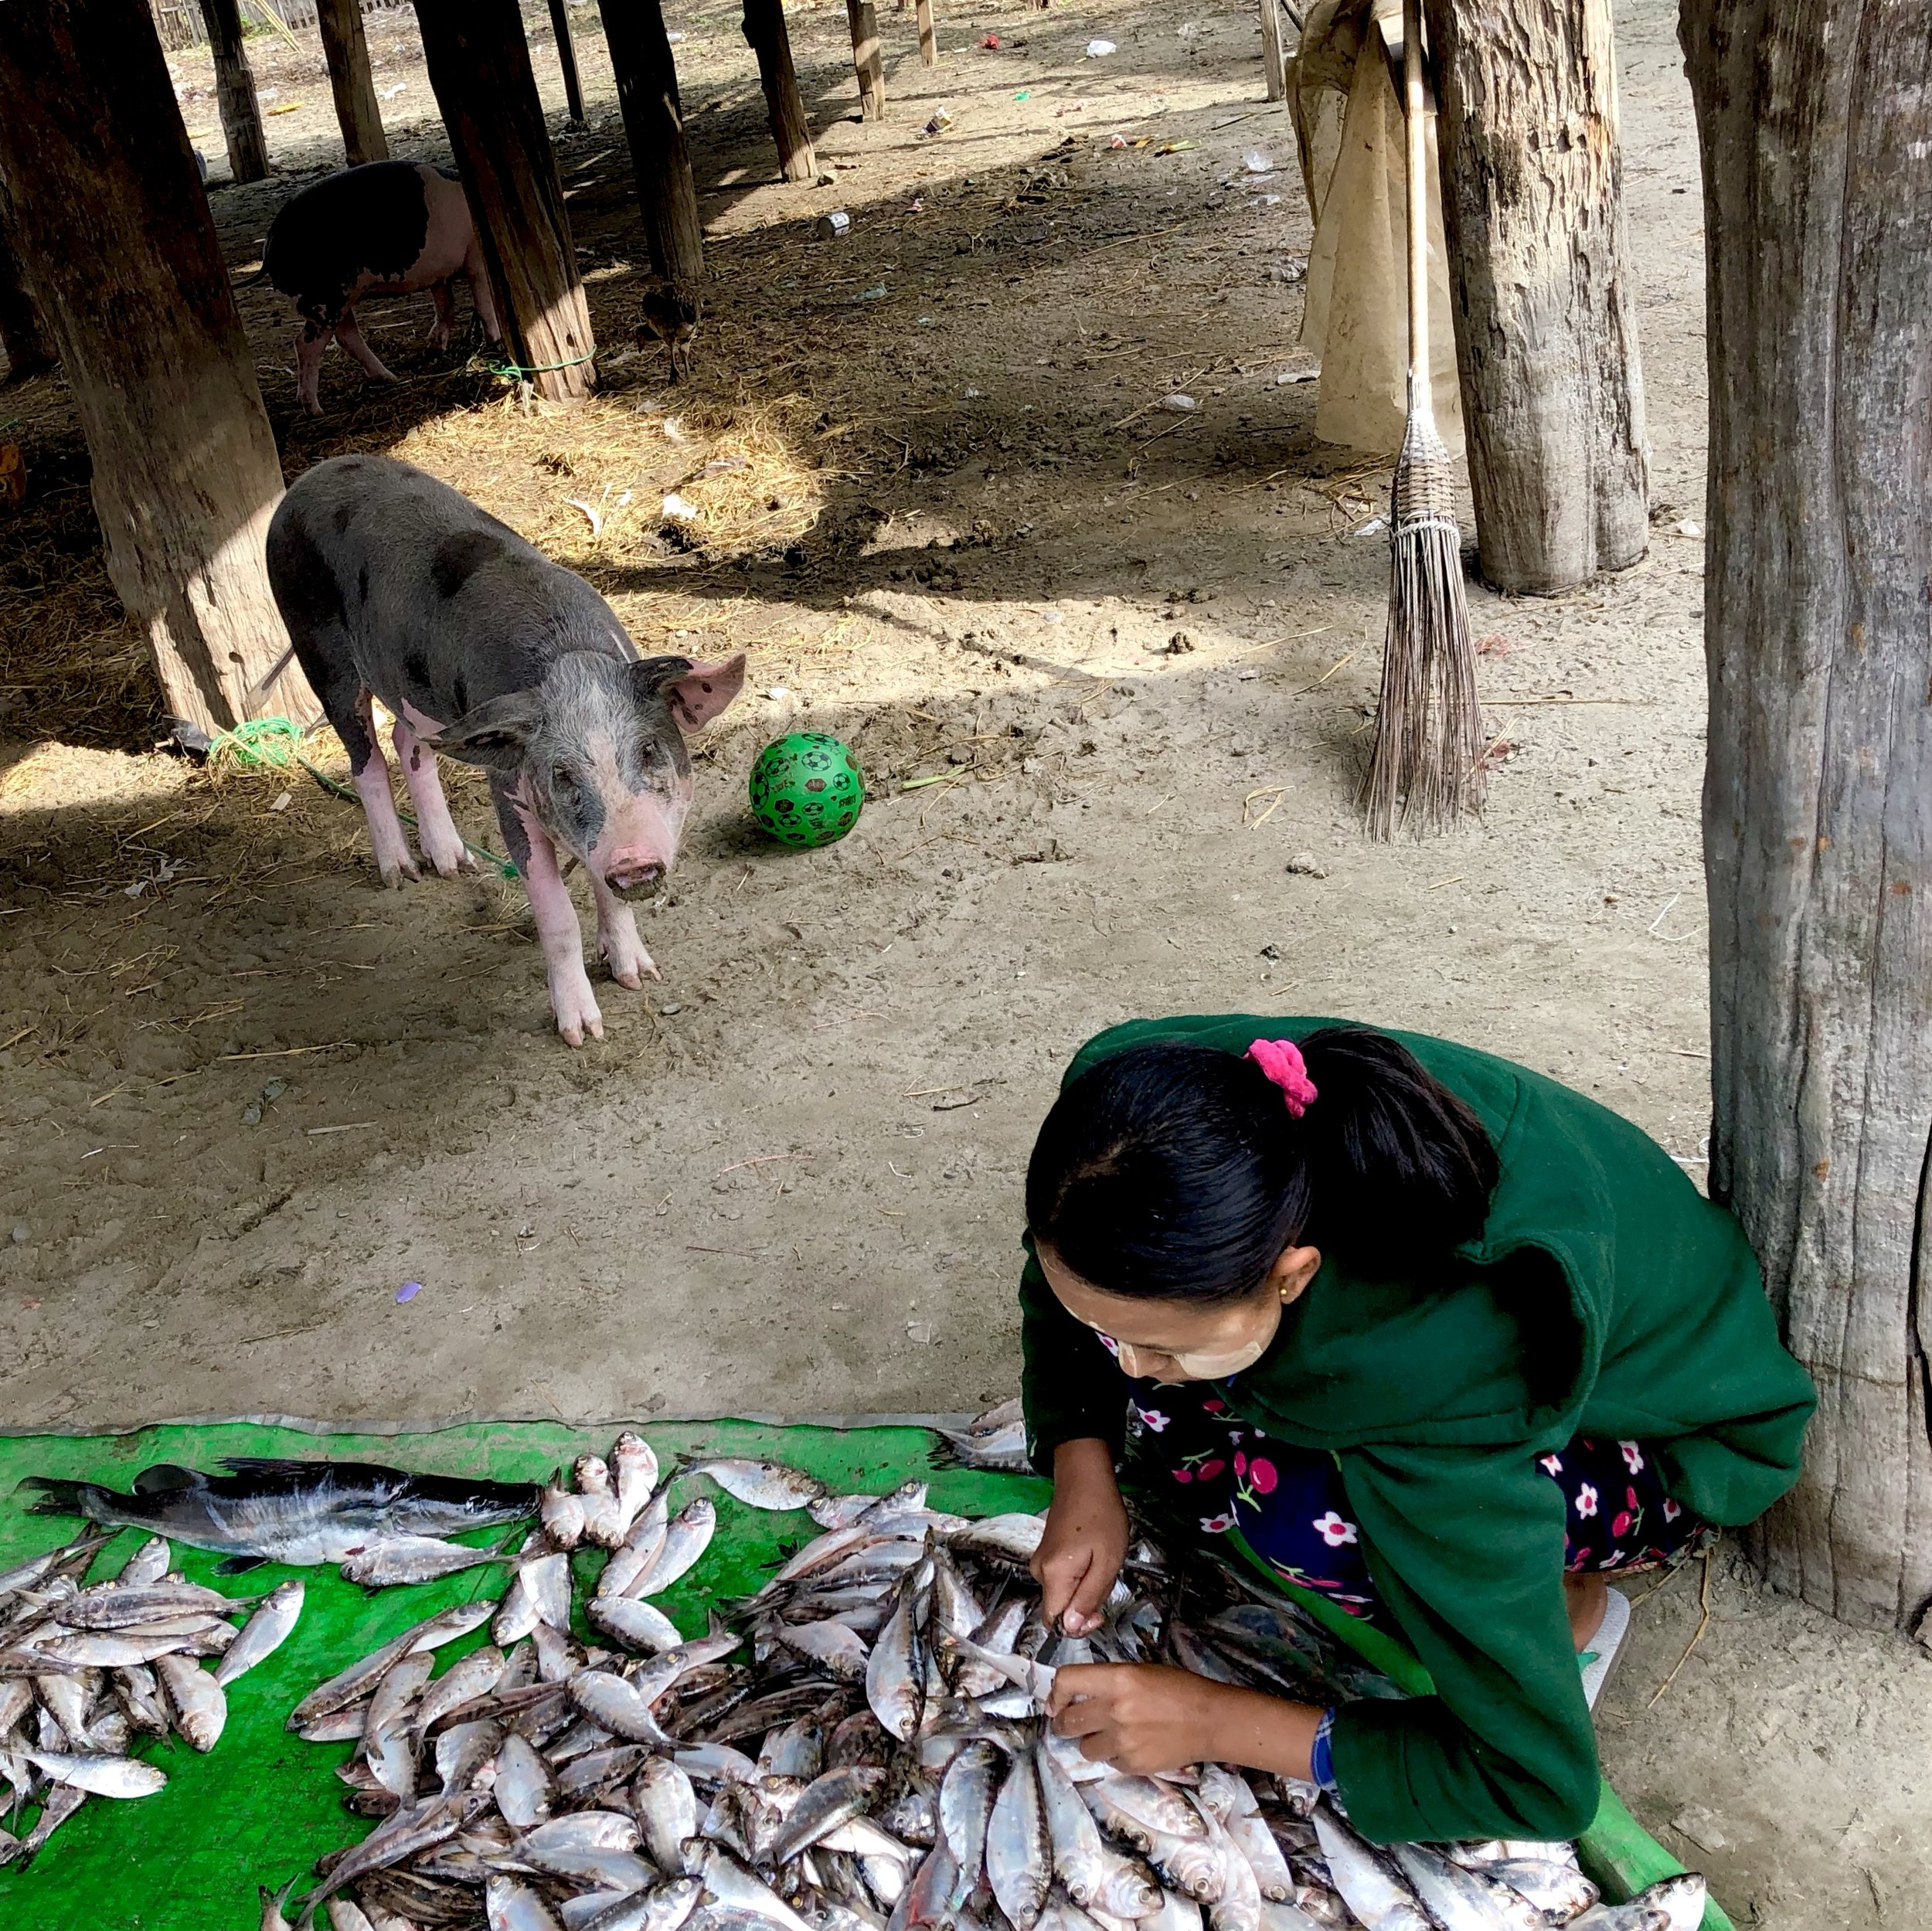 A pig watches on as a woman scales fish in Hepa village